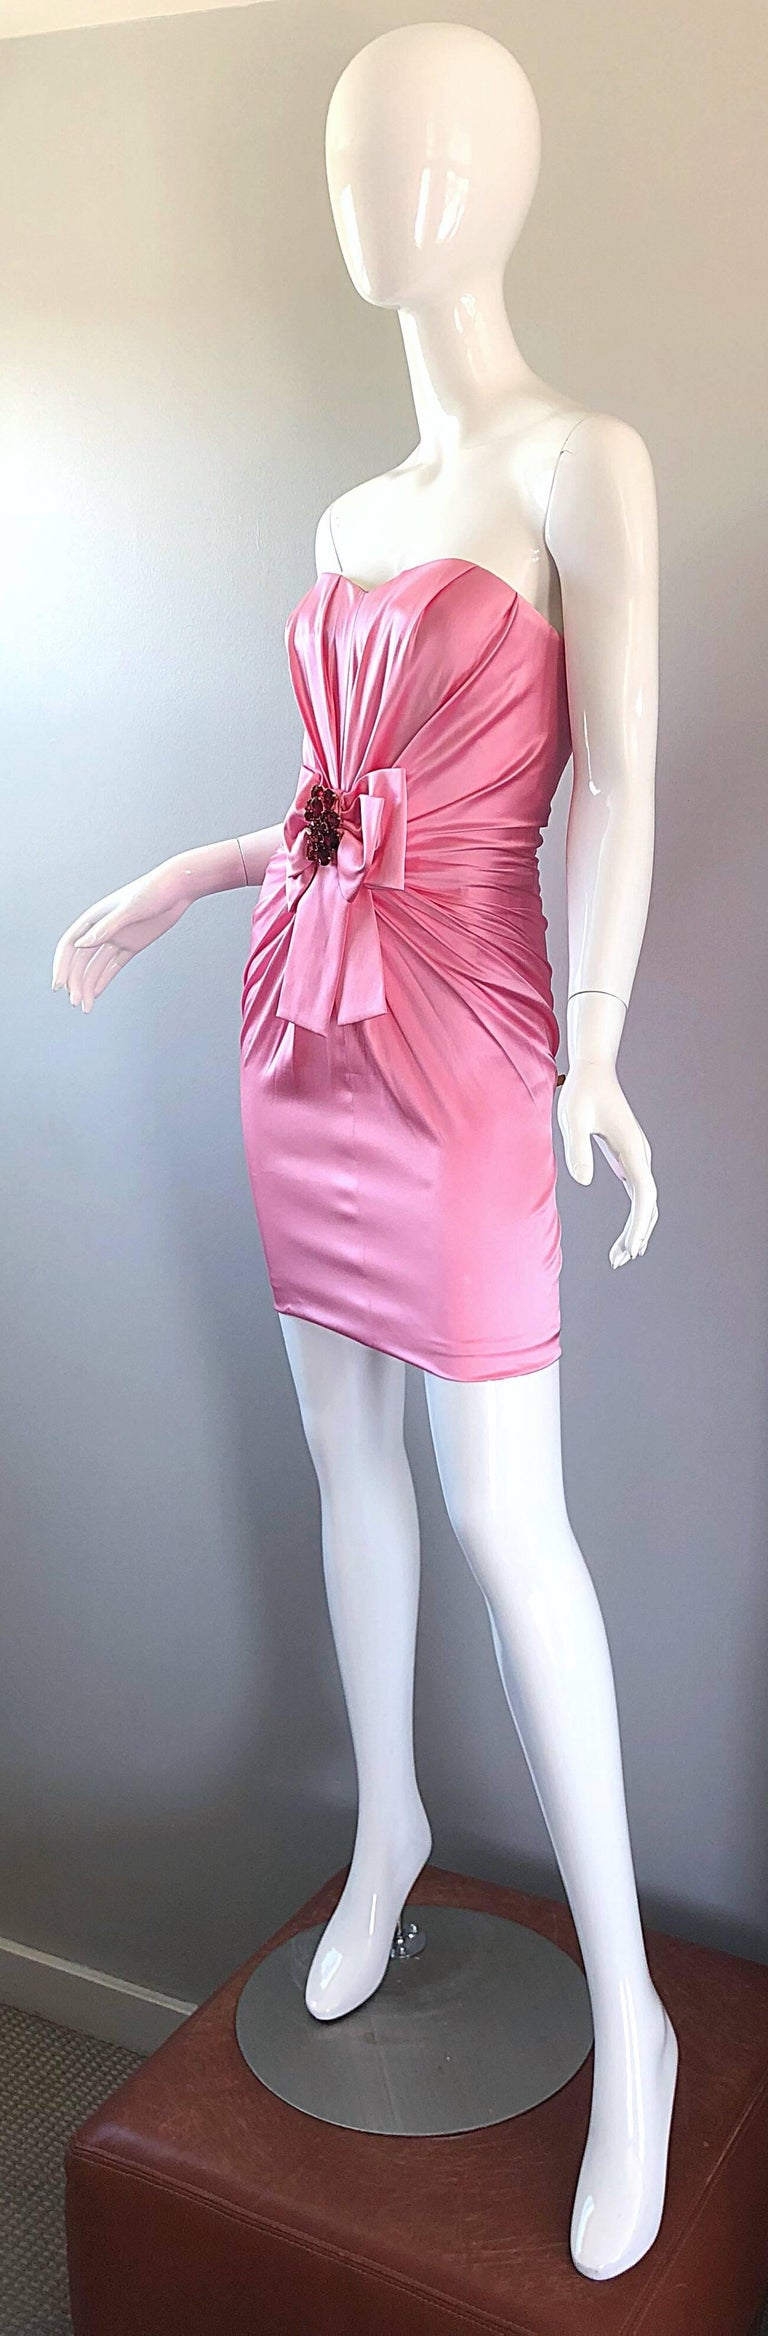 Women's 1990s Dolce and Gabbana Bubblegum Pink + Red Crystal Beaded 90s Silk Mini Dress For Sale